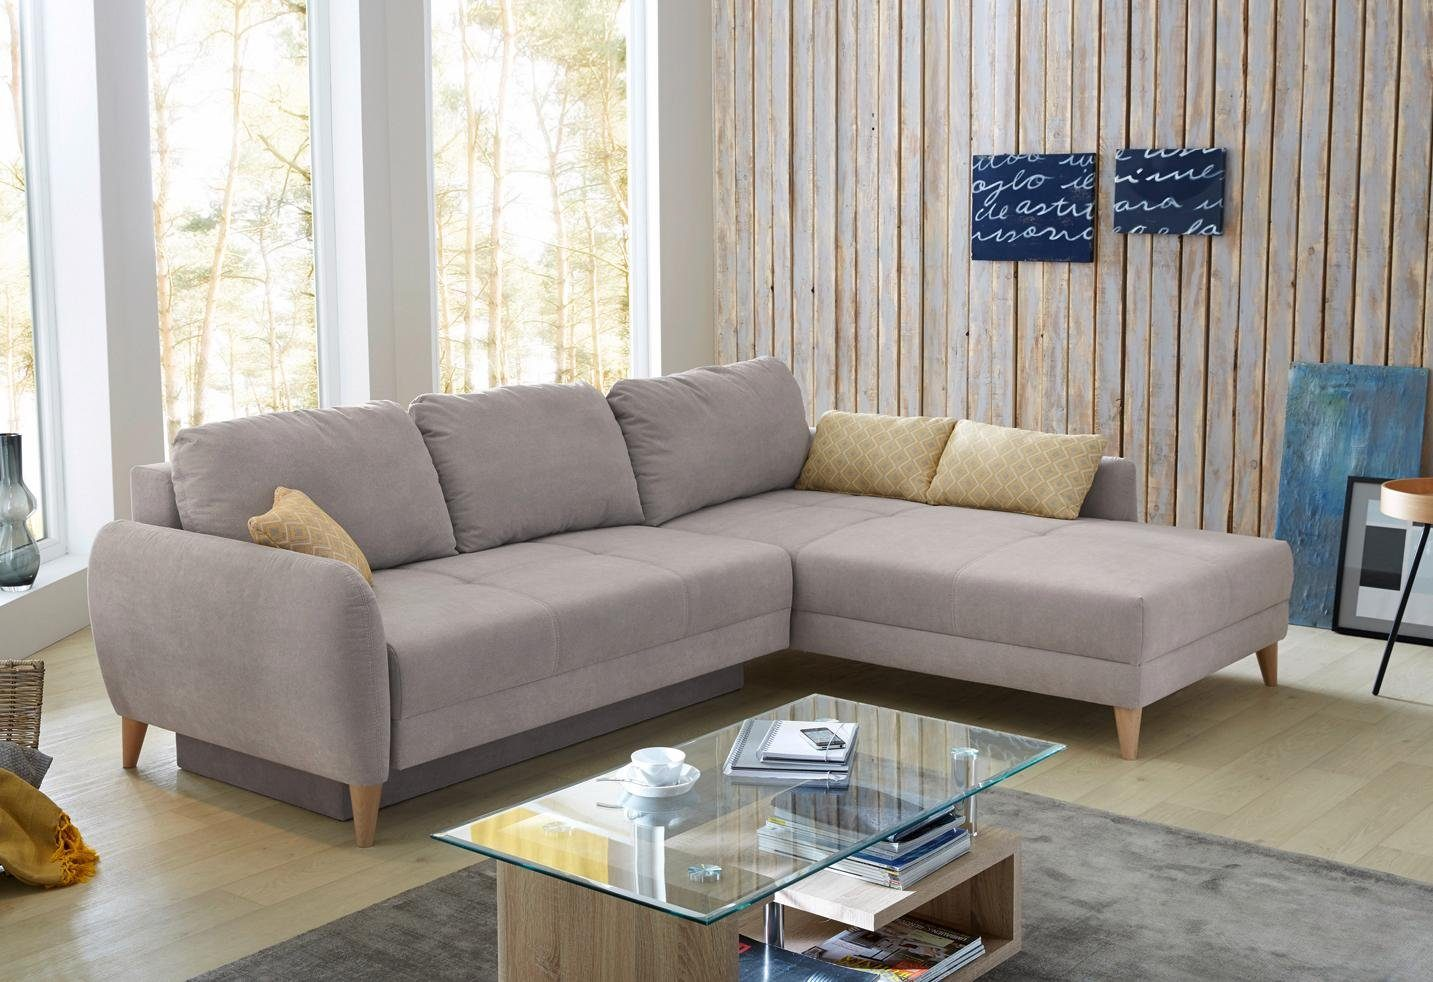 Home affaire Ecksofa, mit Bettfunktion